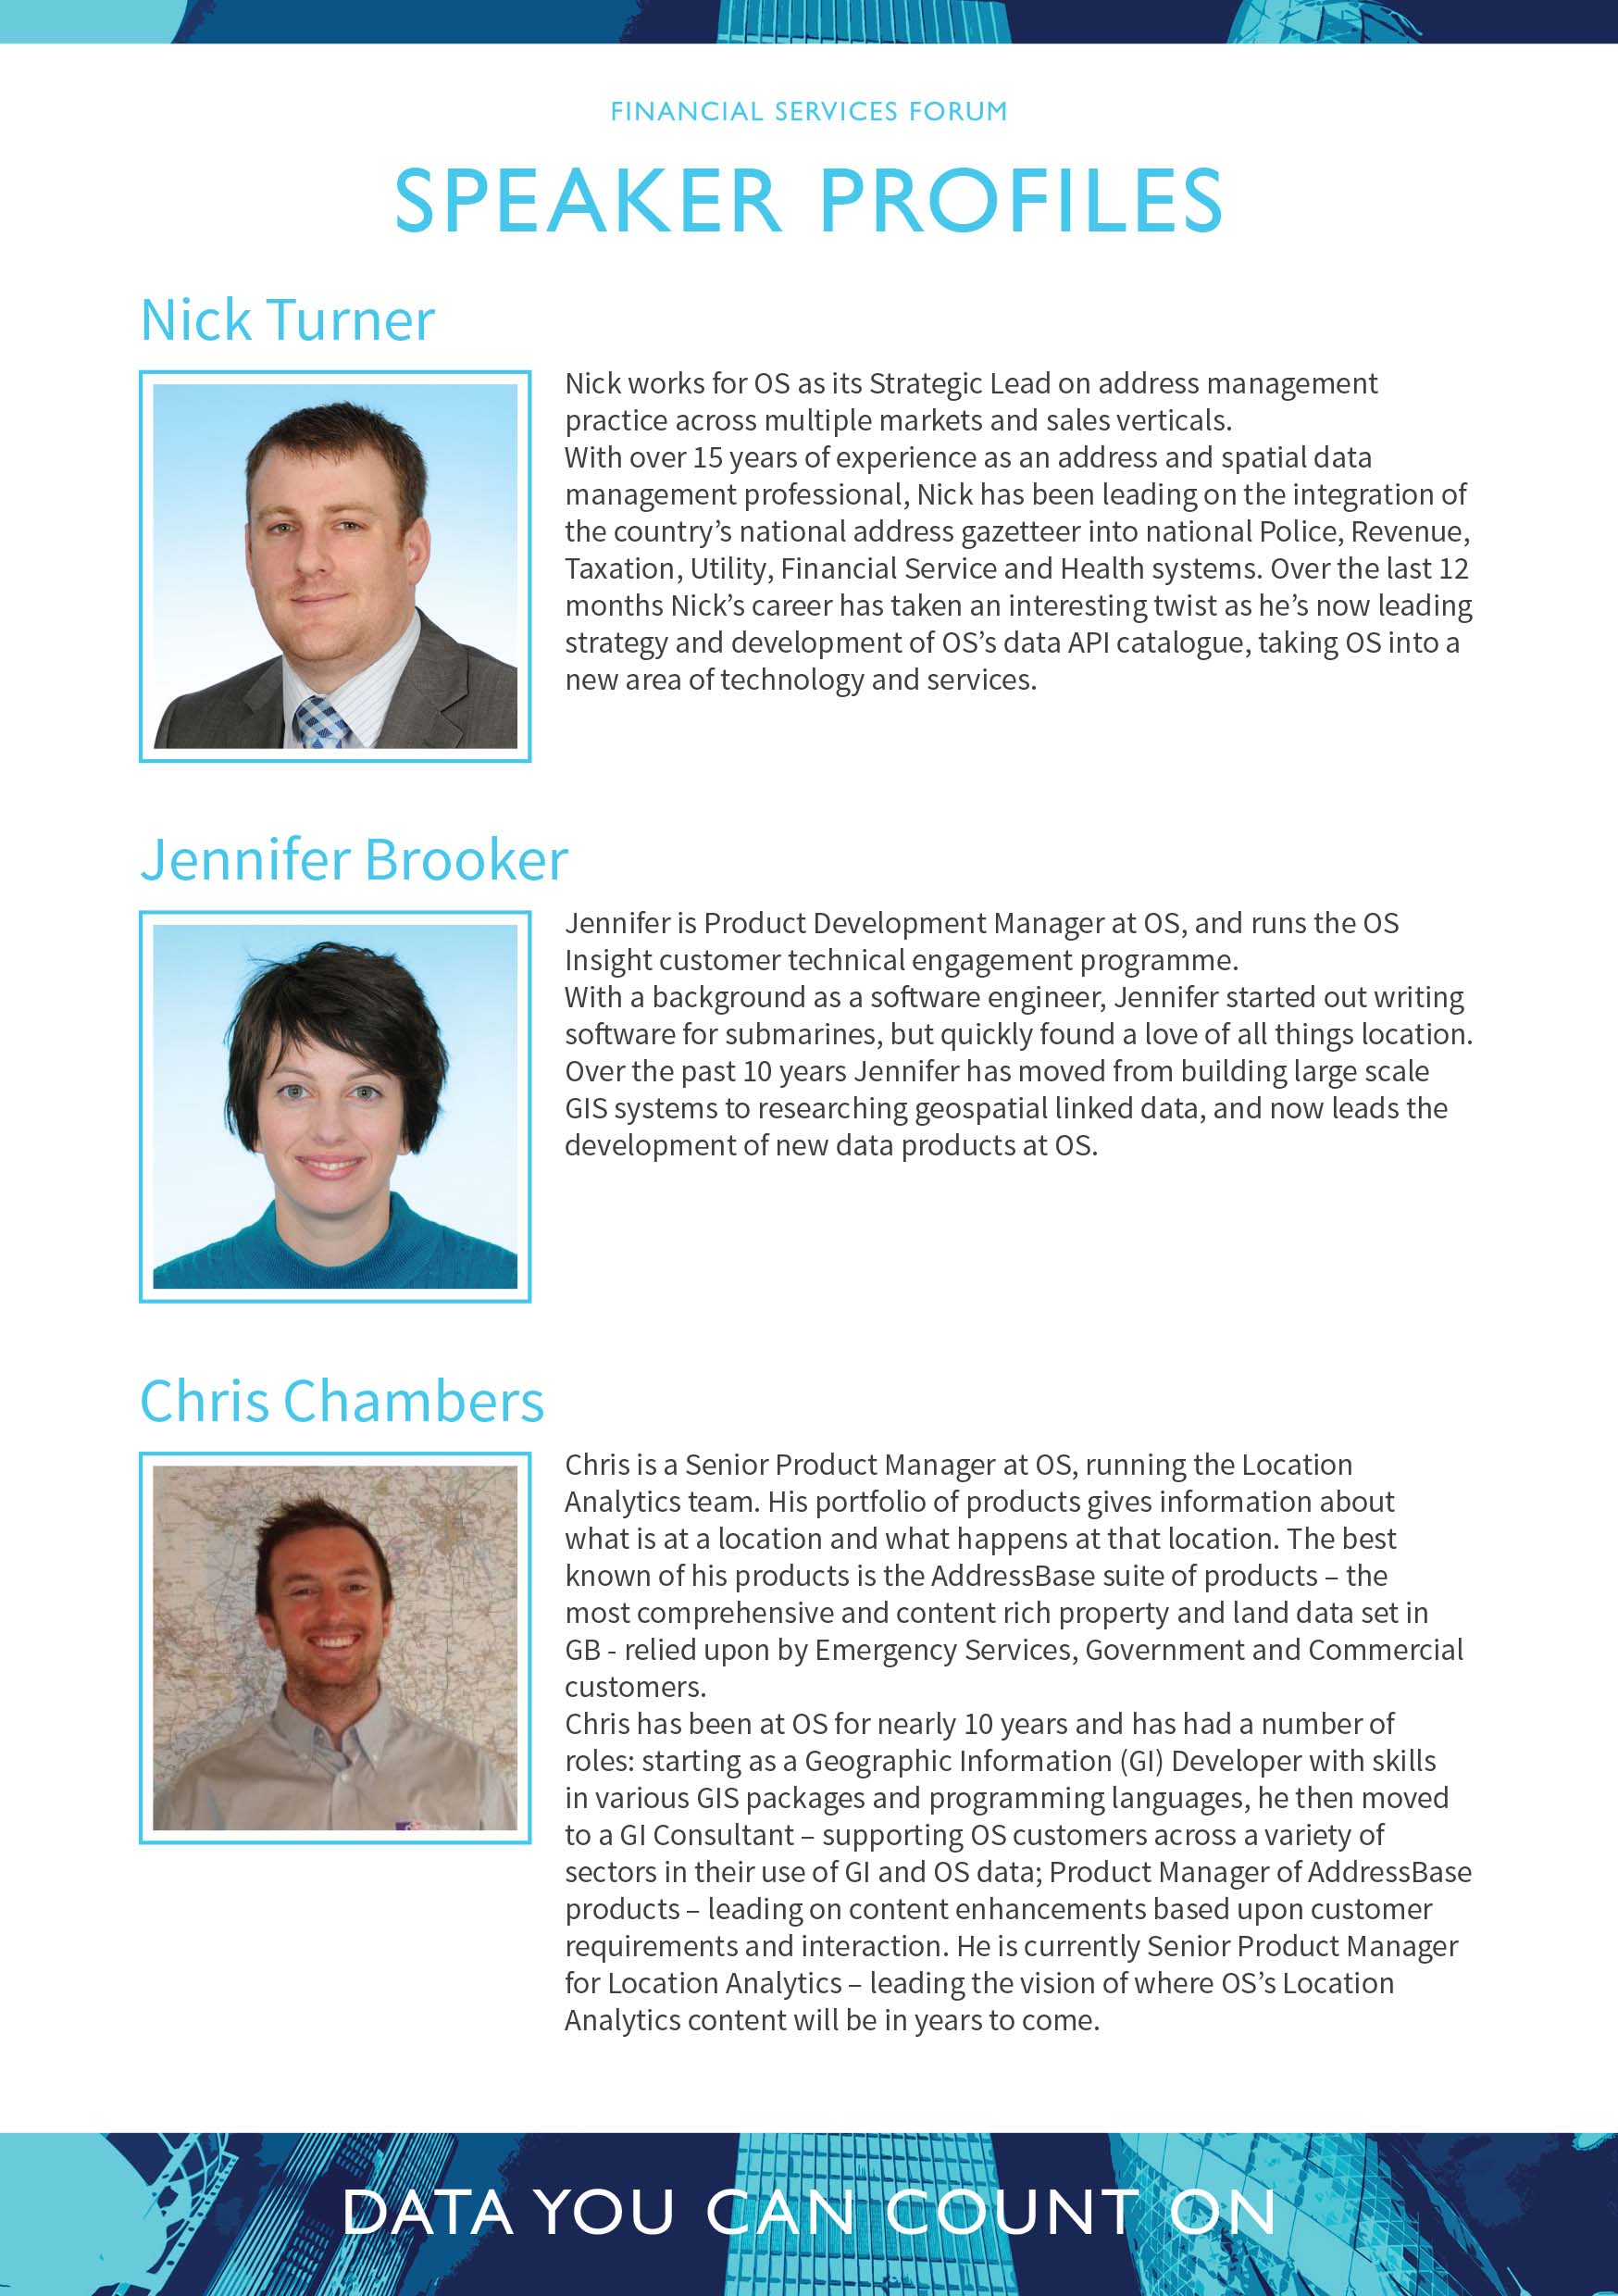 Financial Services Forum Speaker Profiles